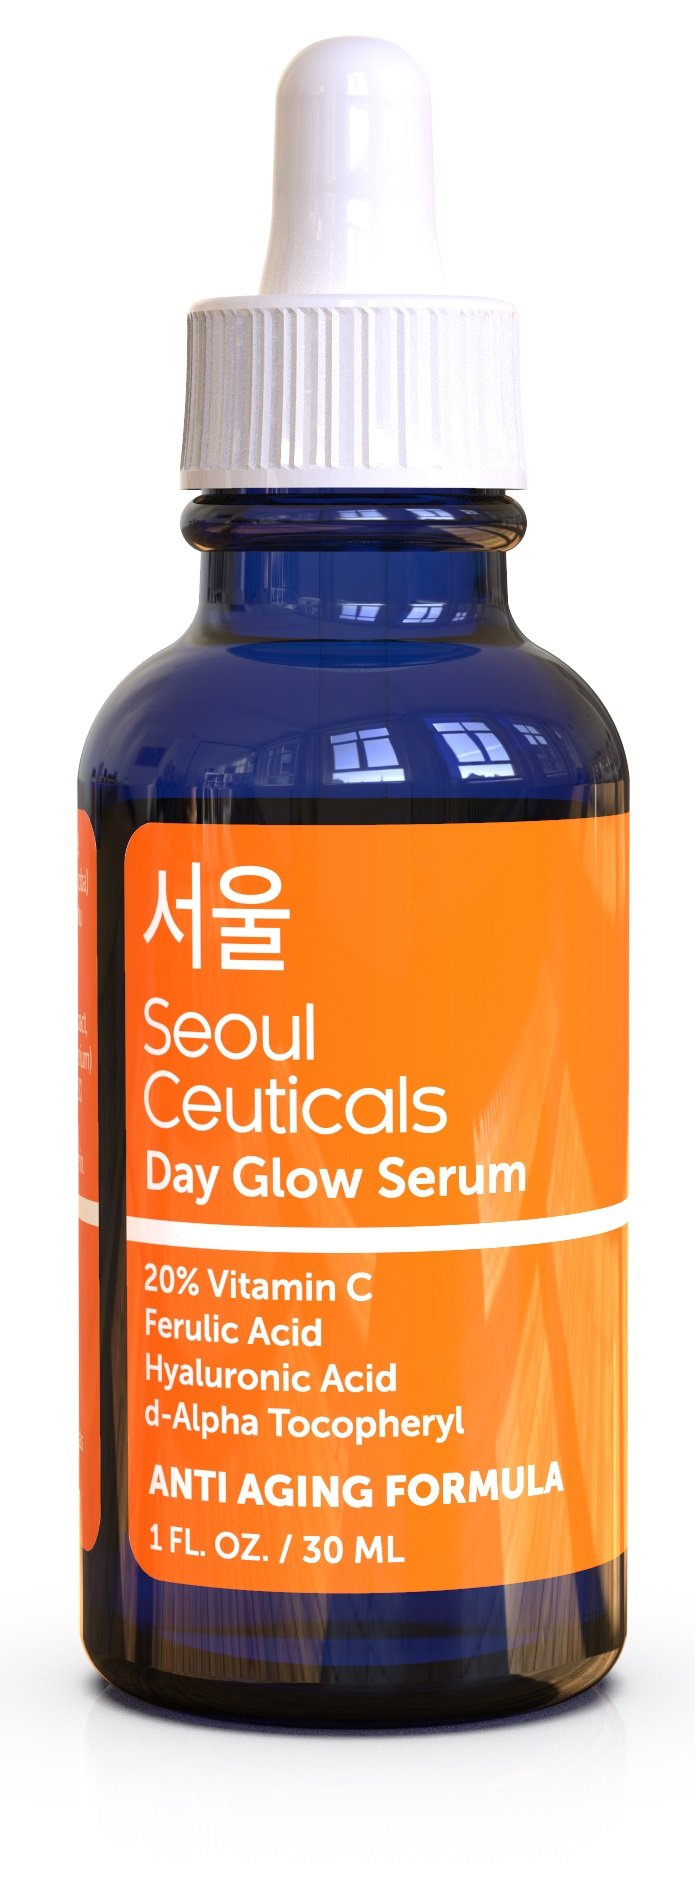 Seoul Ceuticals Korean Skin Care